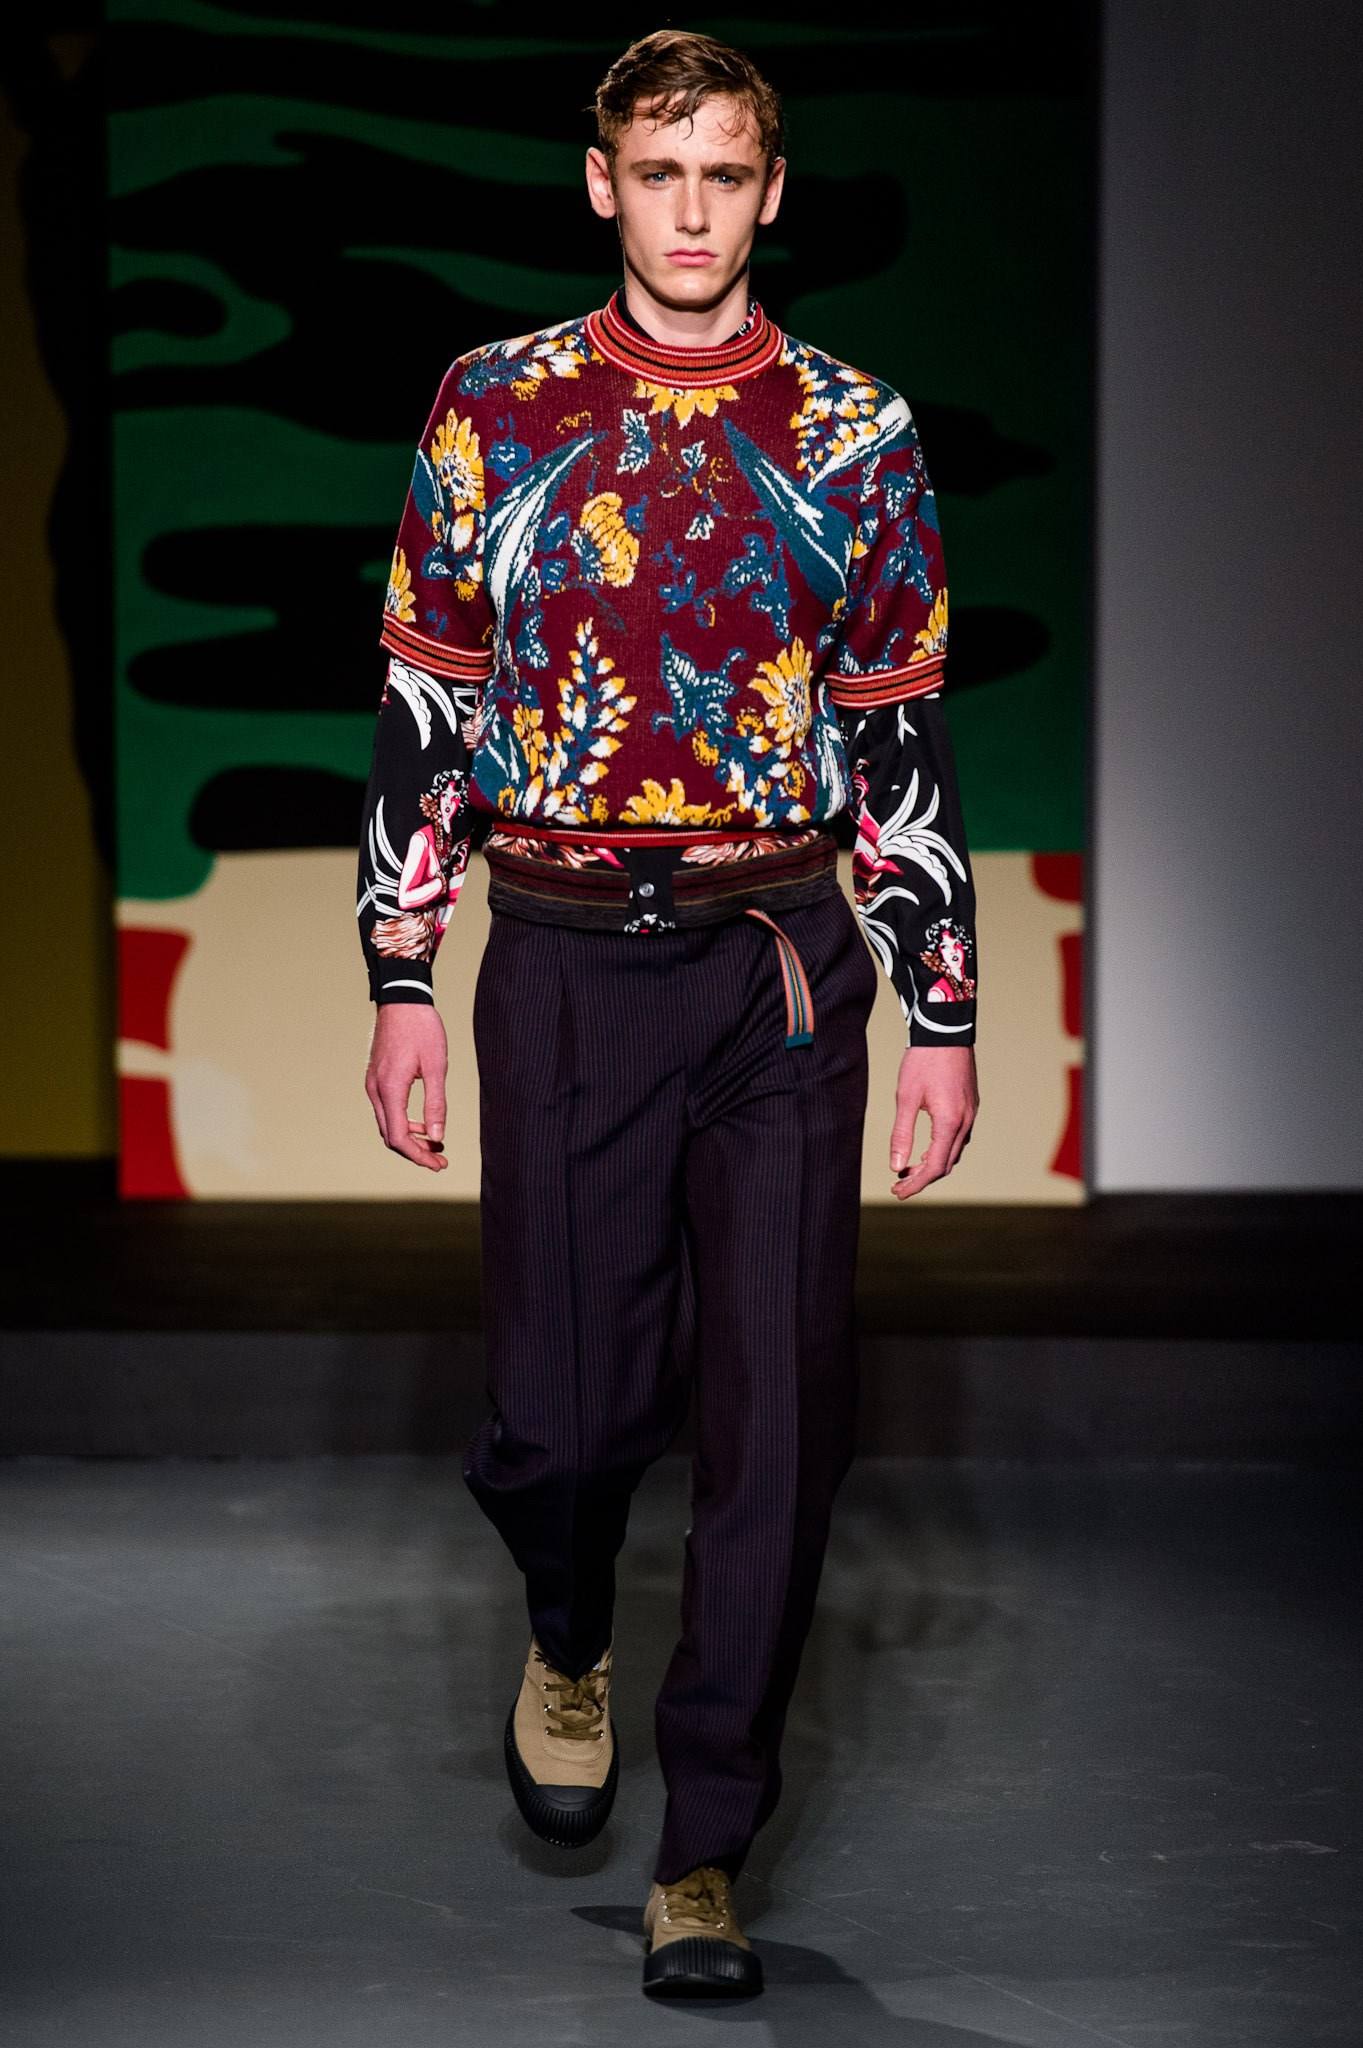 A look from Prada SS14 menswear collection.